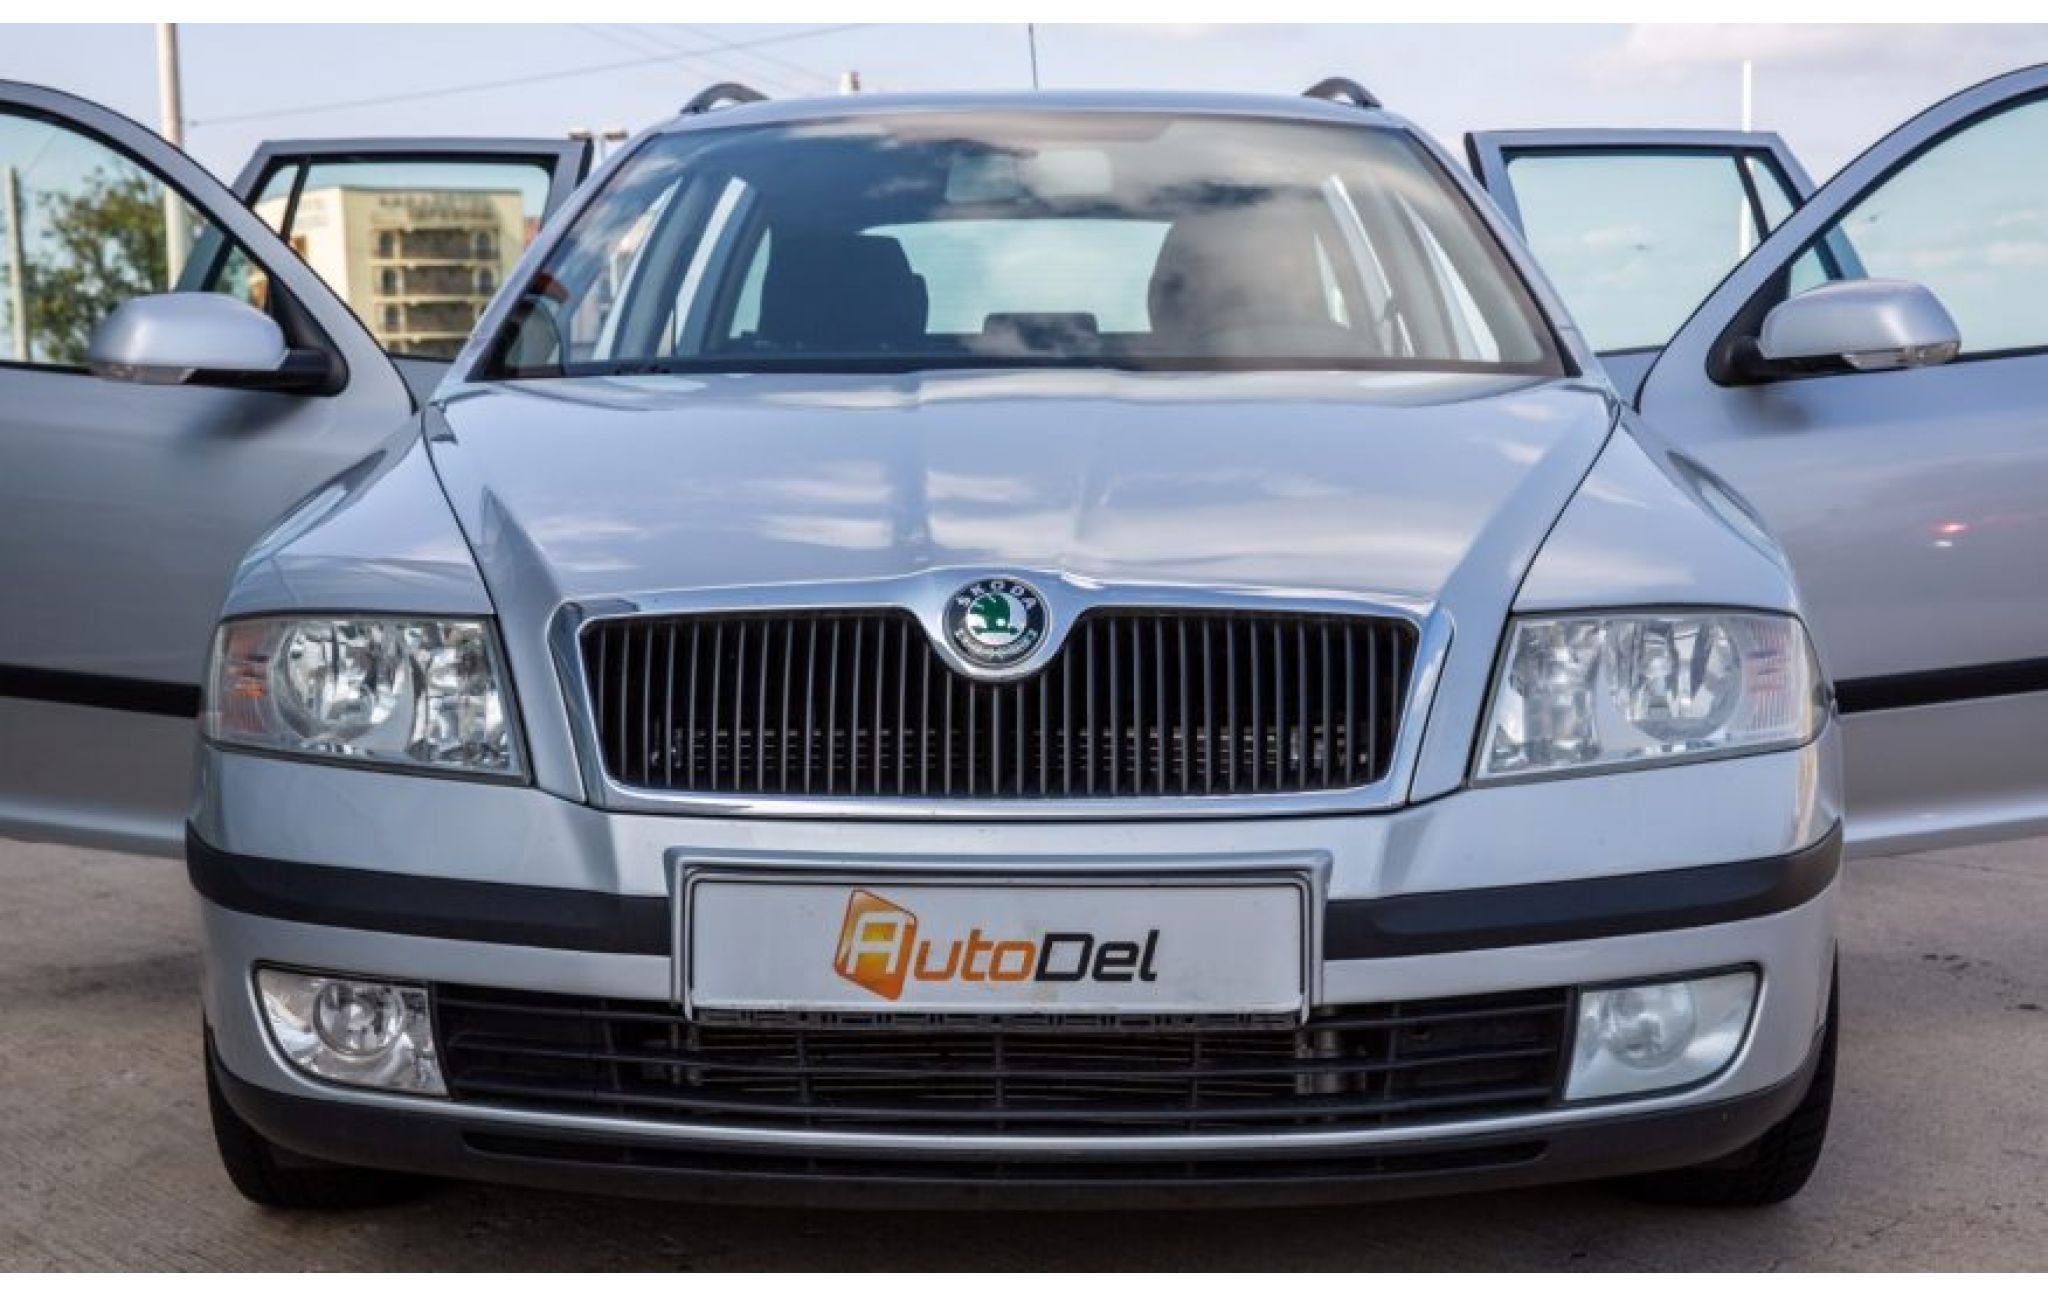 Skoda Octavia 2008 Second Hand